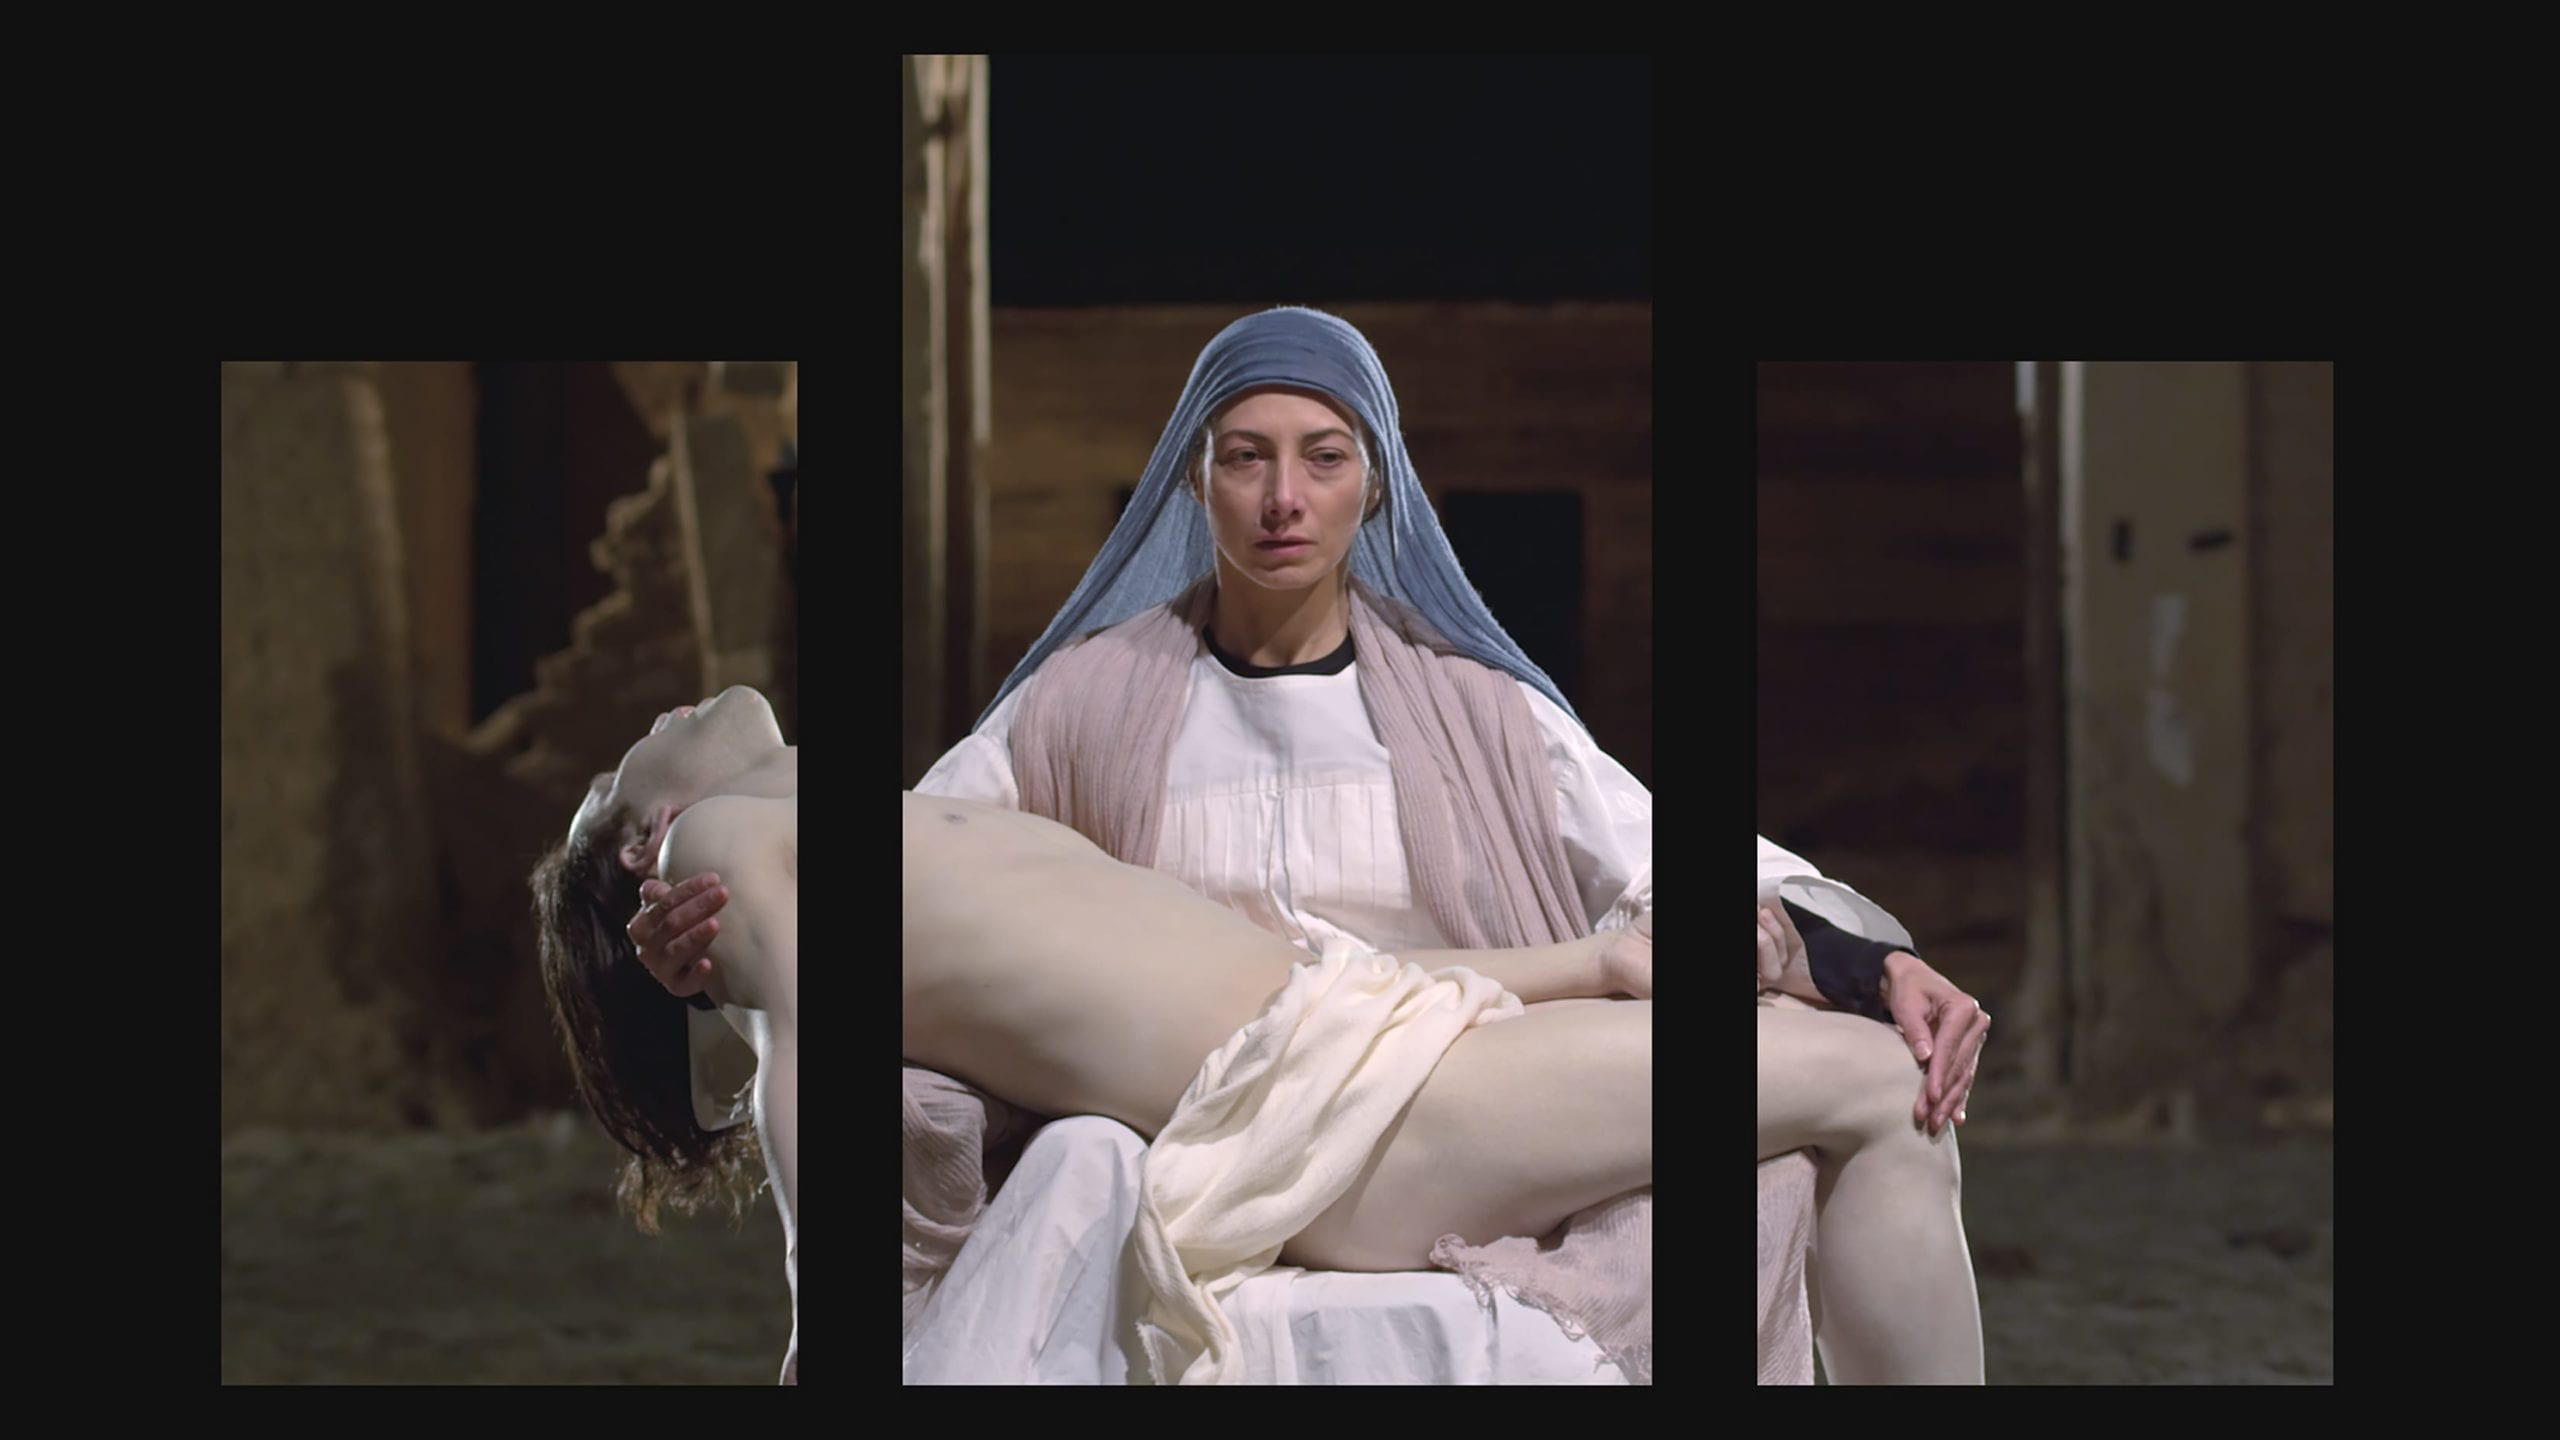 bill-viola-mary-2016-video-triptych-executive-producer-kira-perov-photo-courtesy-blainsouthern-6